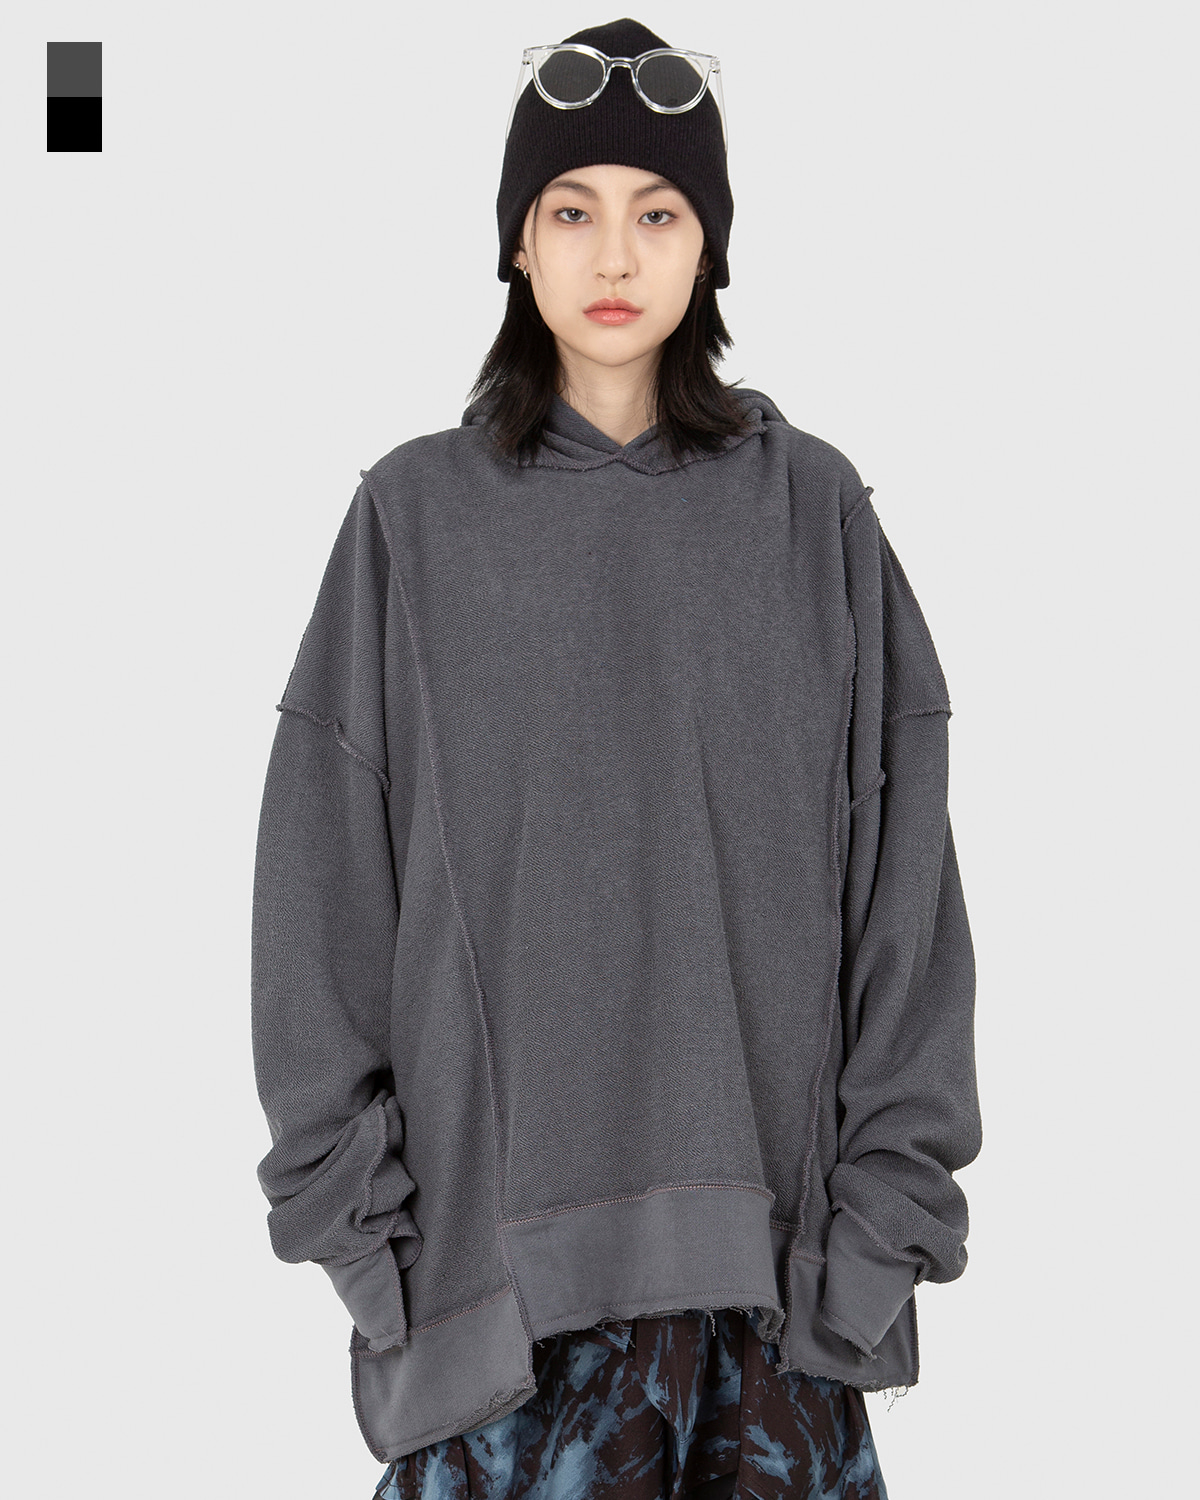 raucohouse-REVERSE PANEL OVERSIZED HOODIE - RAUCO HOUSE♡韓國男裝上衣